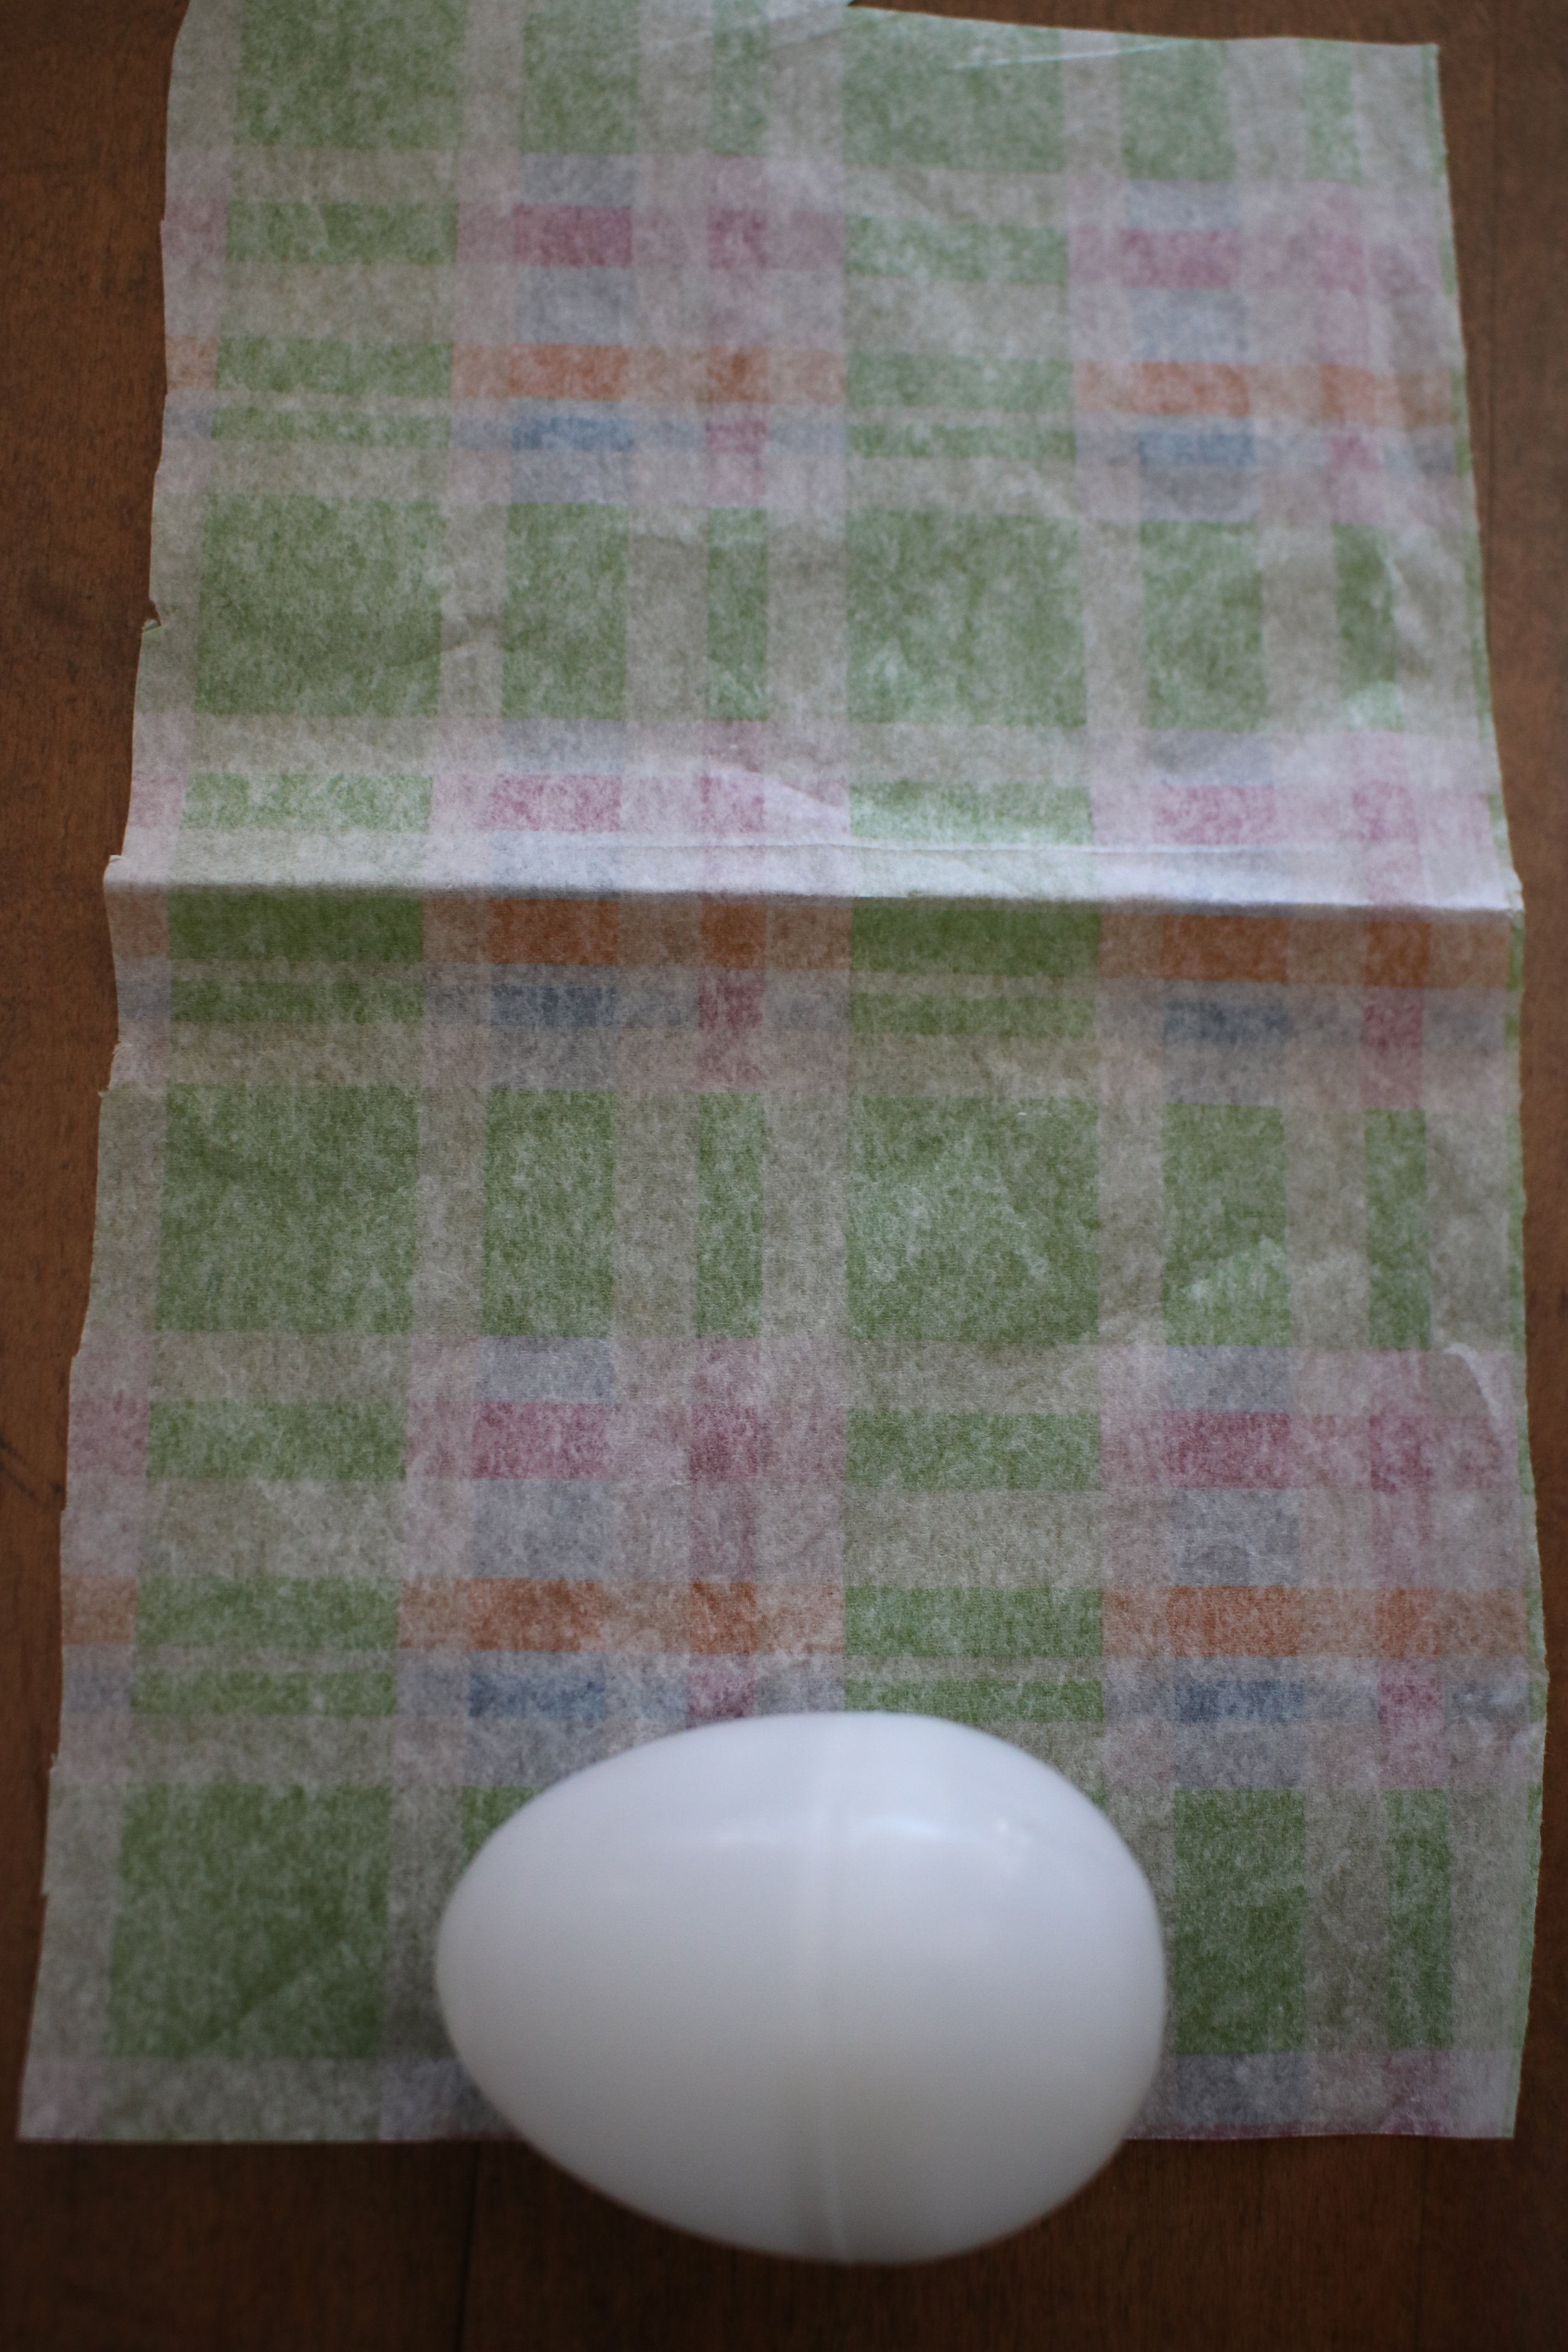 Step 4 - Place the side of the egg that has the glue on it down on the middle of the paper edge.